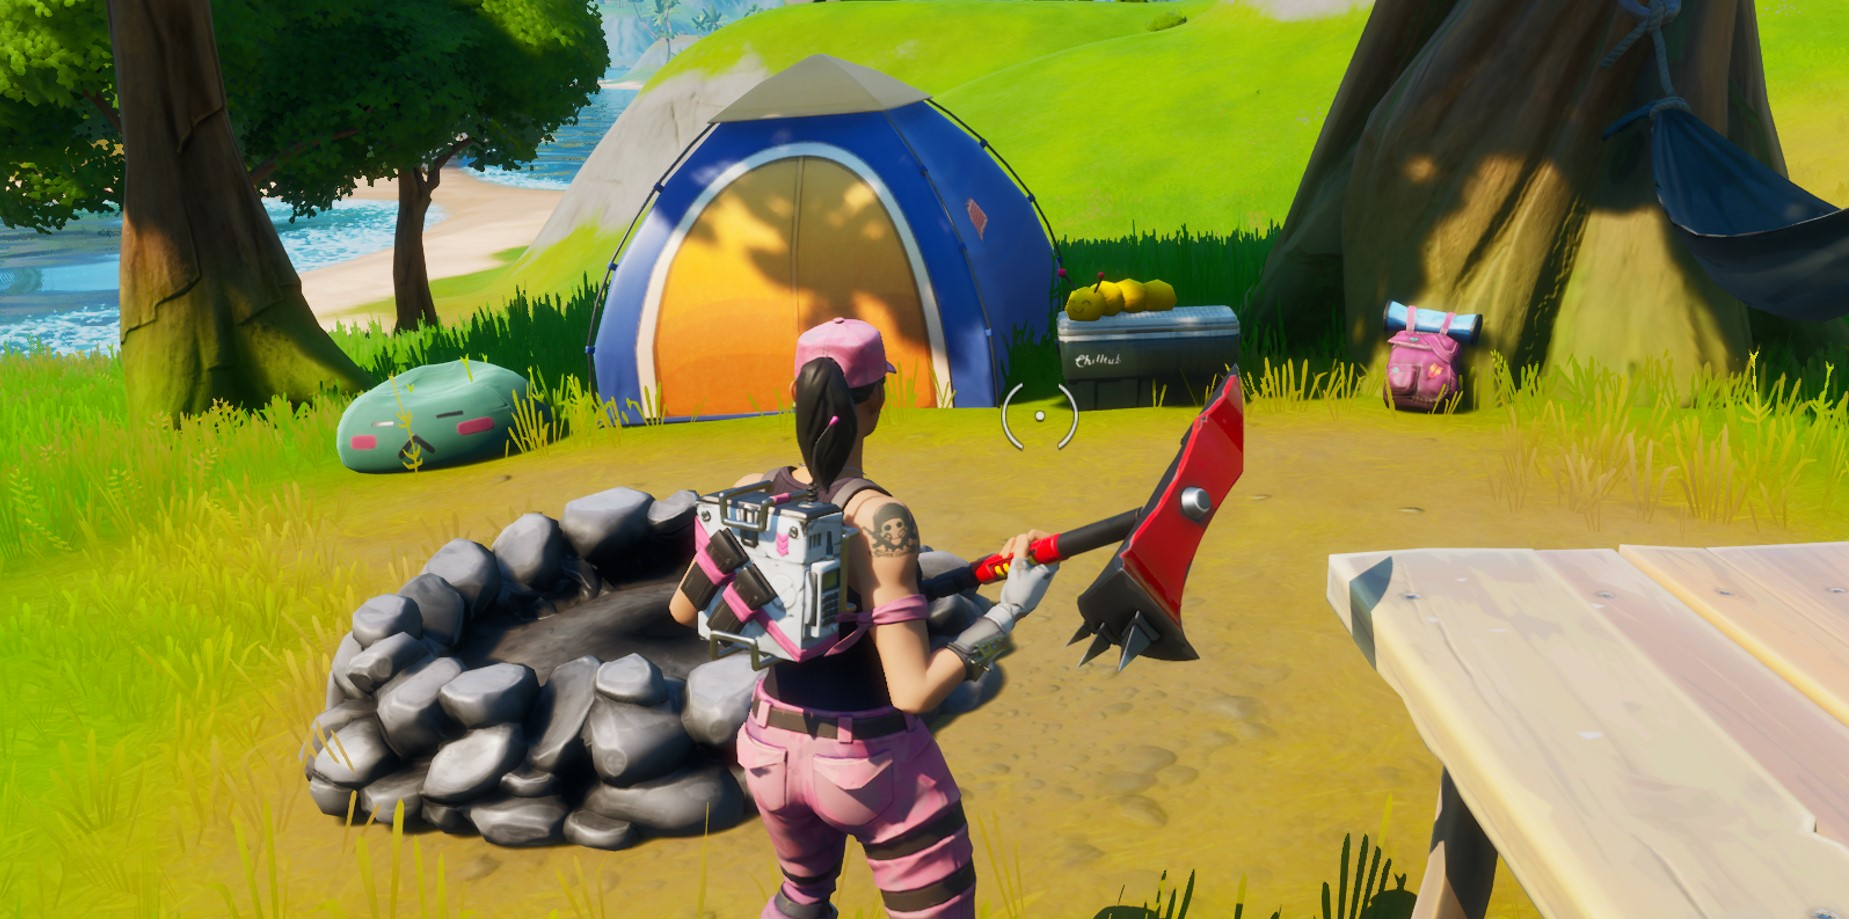 Where to visit Skye's Coastal Campsites in Fortnite Chapter 2 Season 2